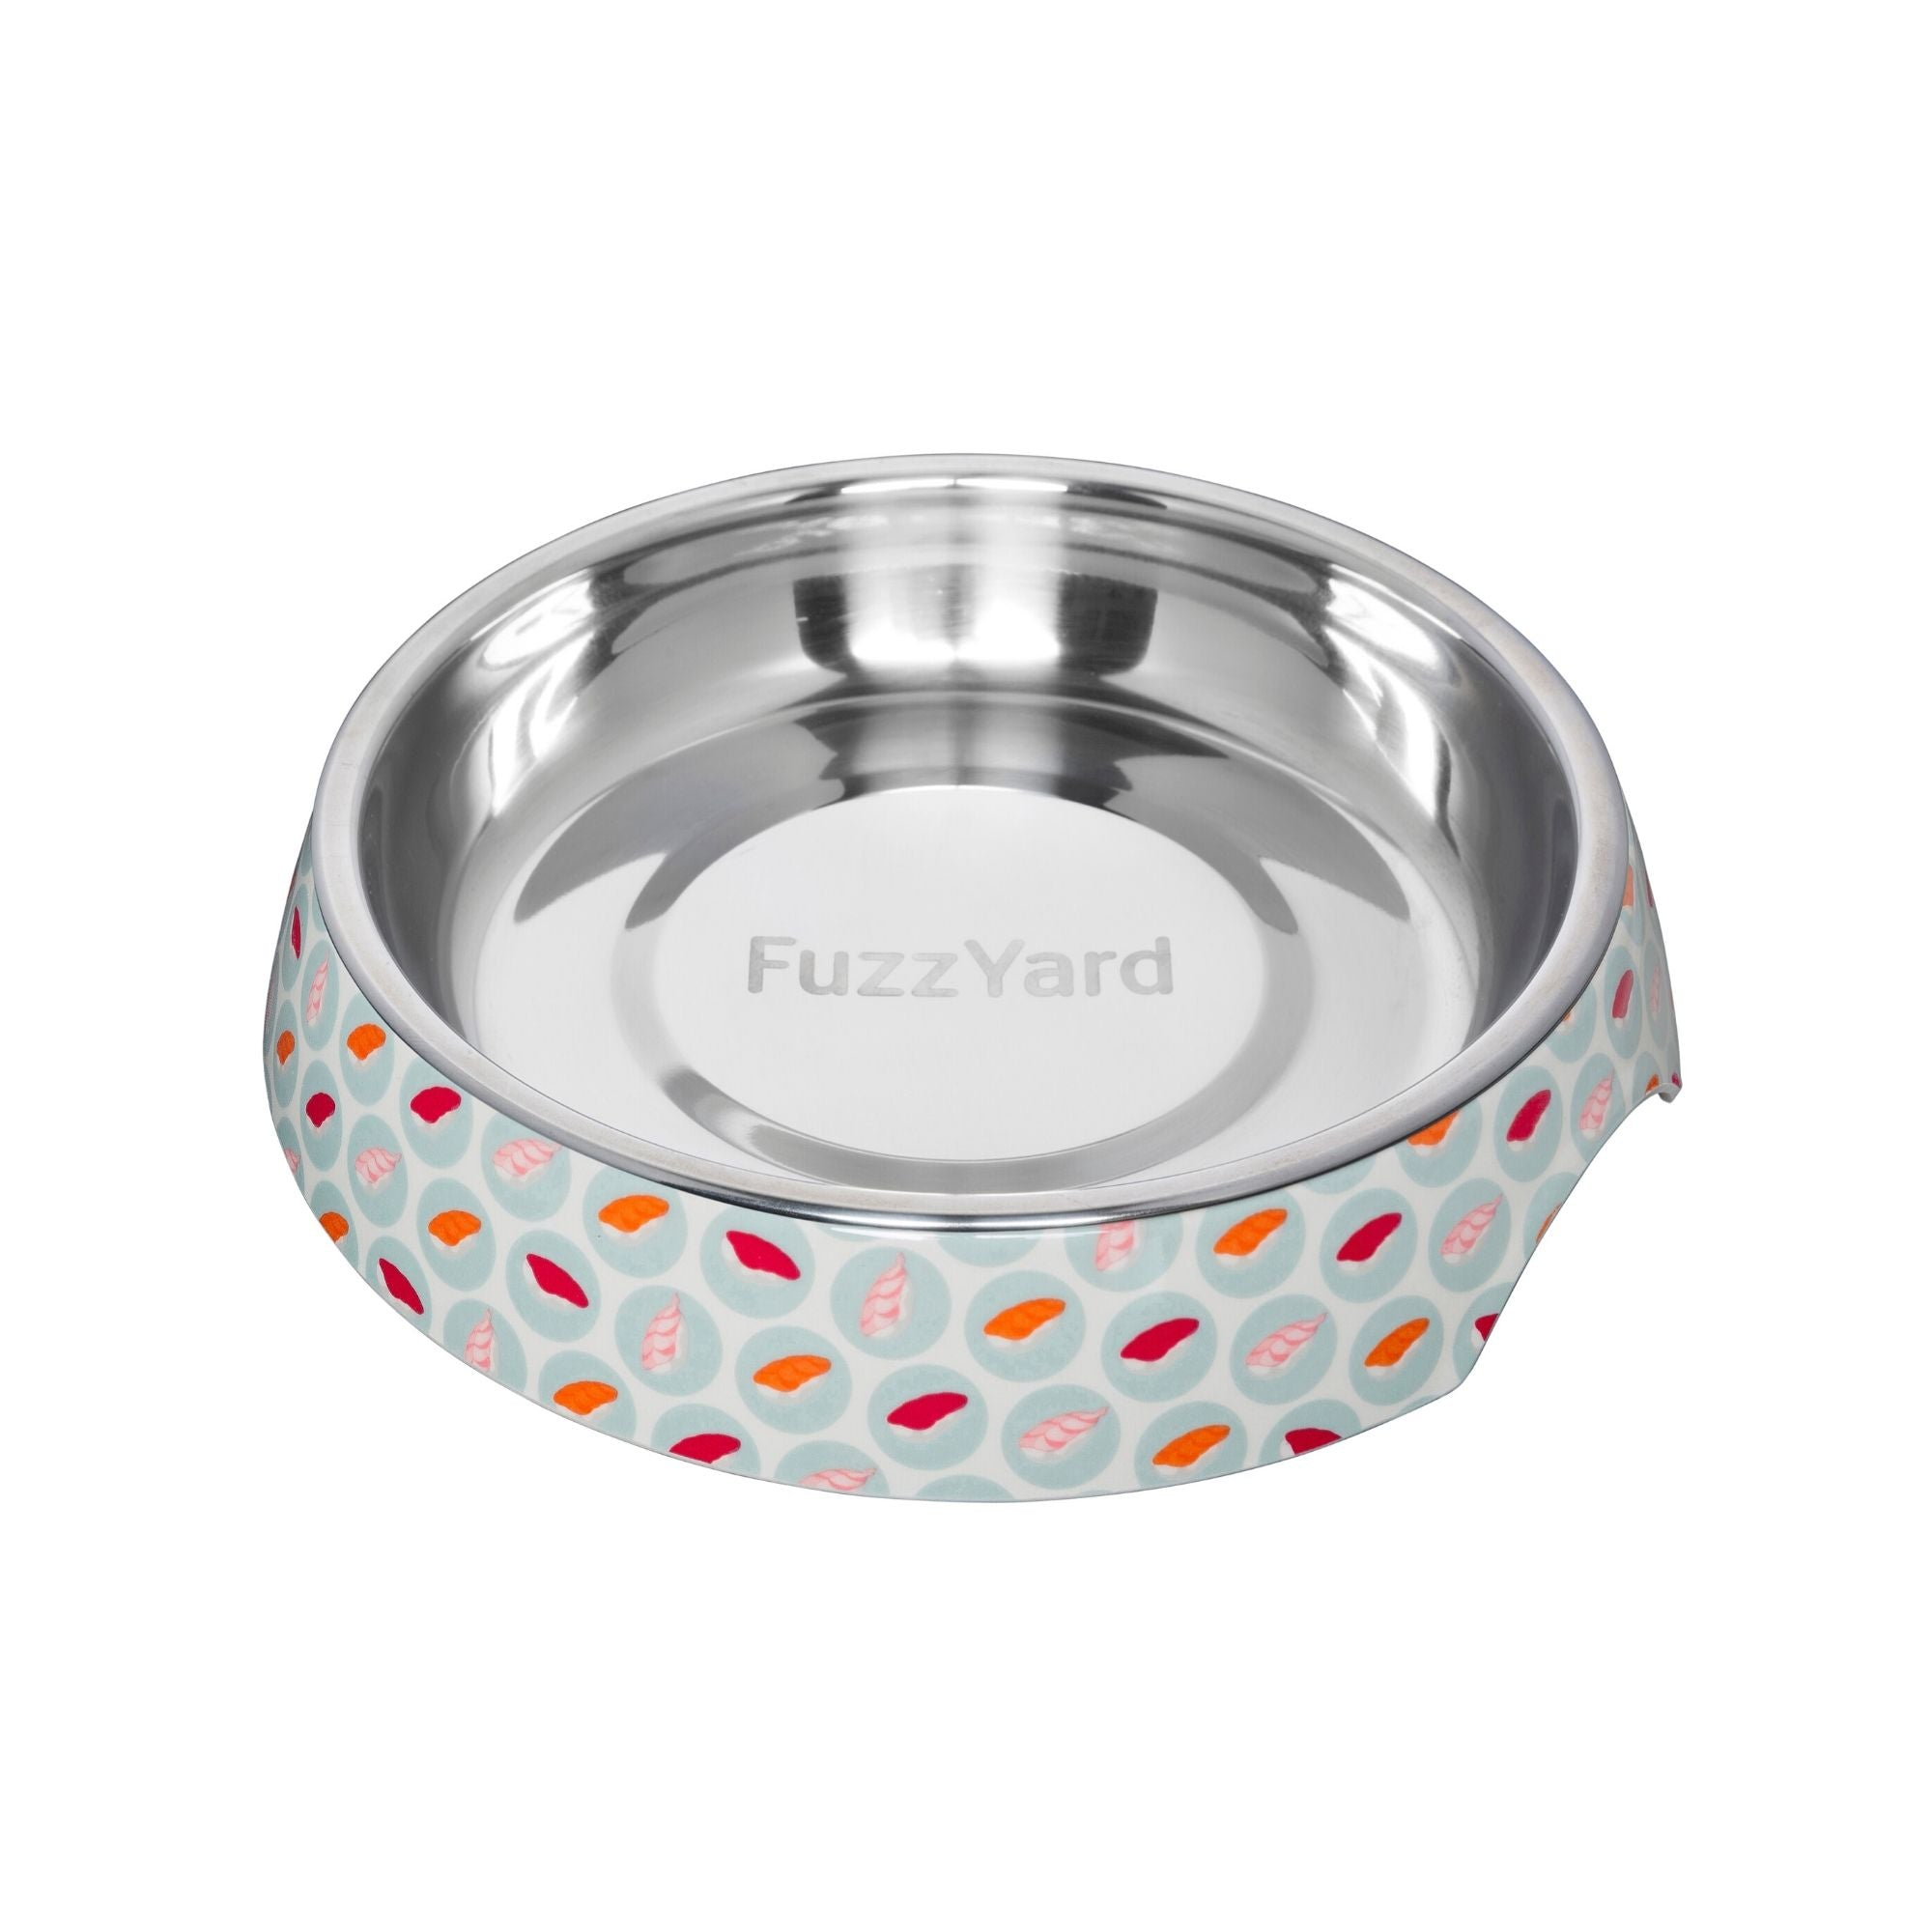 Fuzzyard Sushi Delight Cat Bowl | Barks & Bunnies